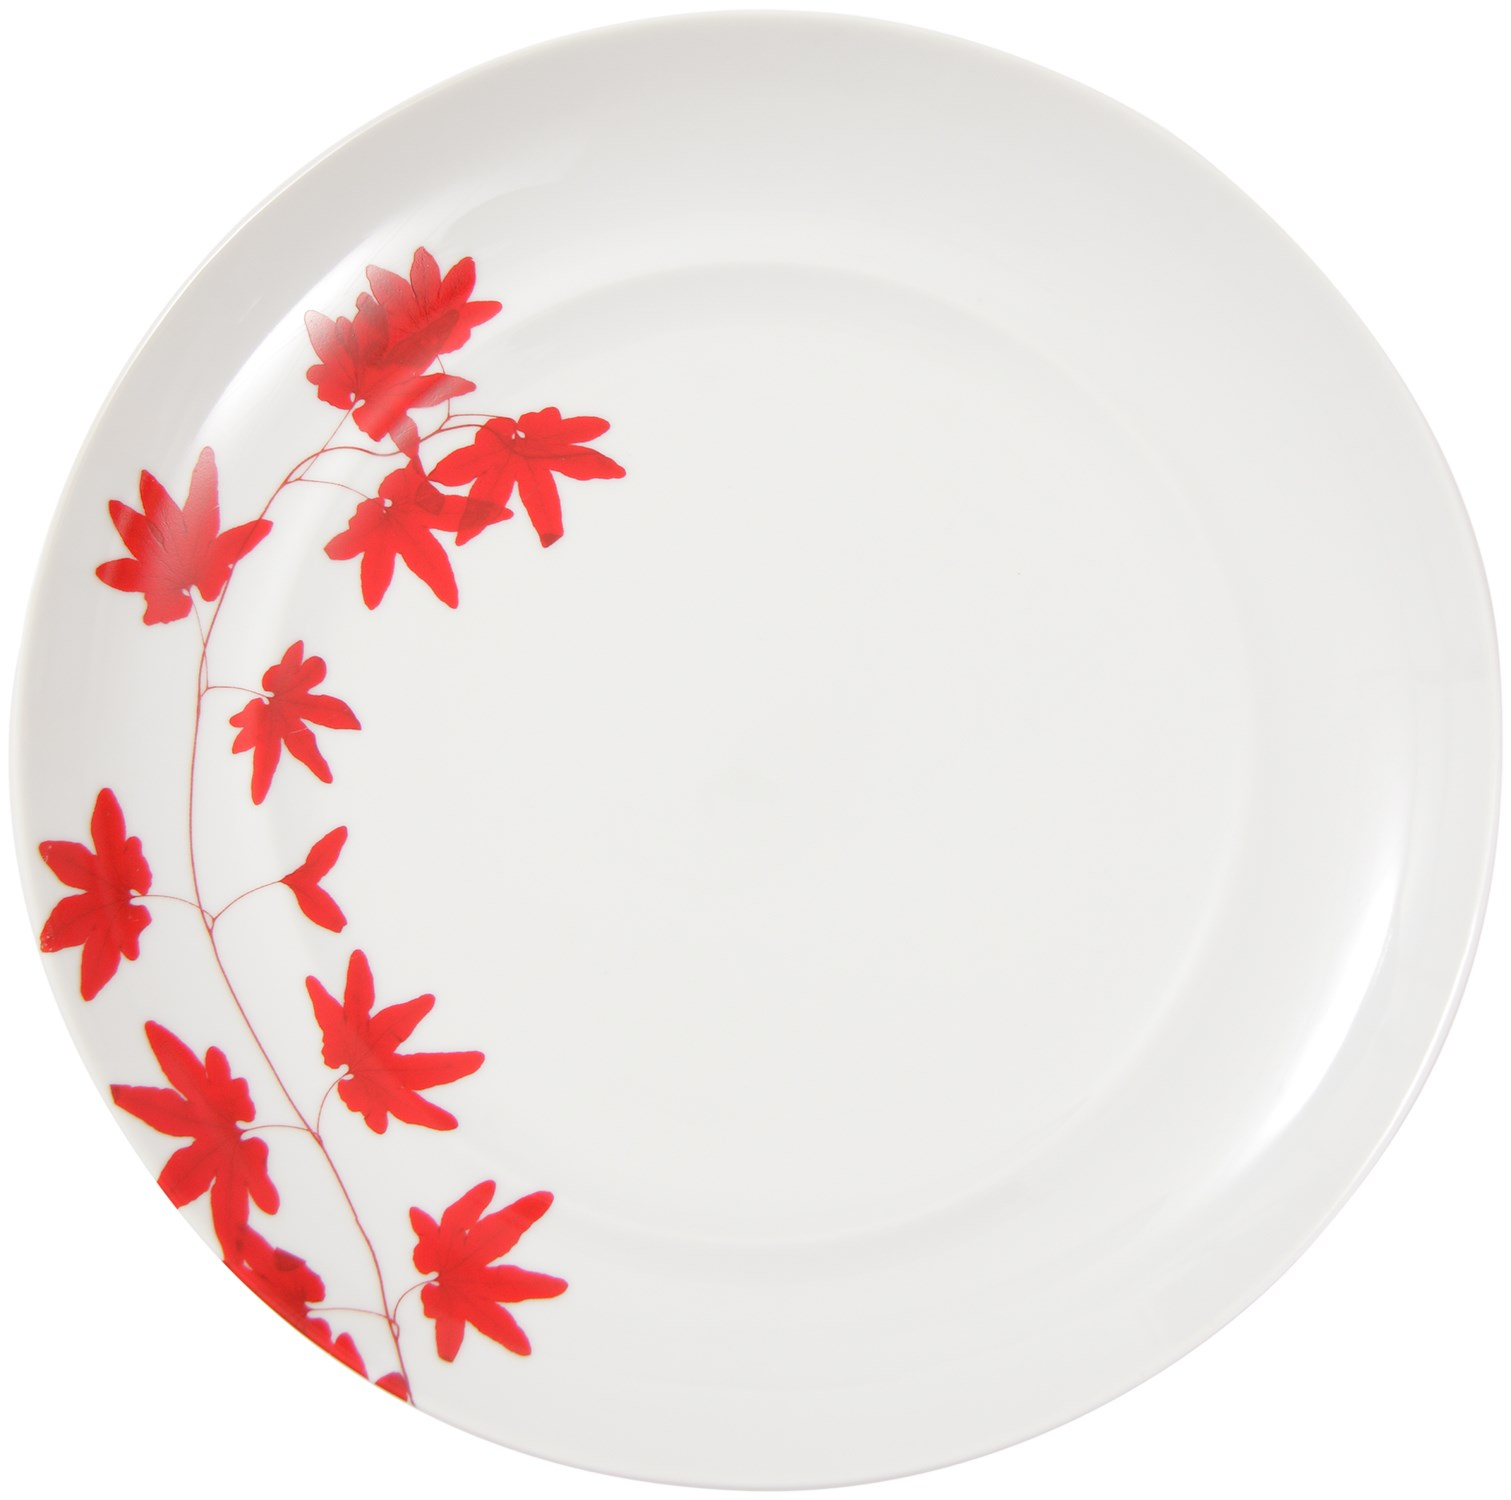 click to zoom  sc 1 st  Inexistência & SPAL Tableware fall